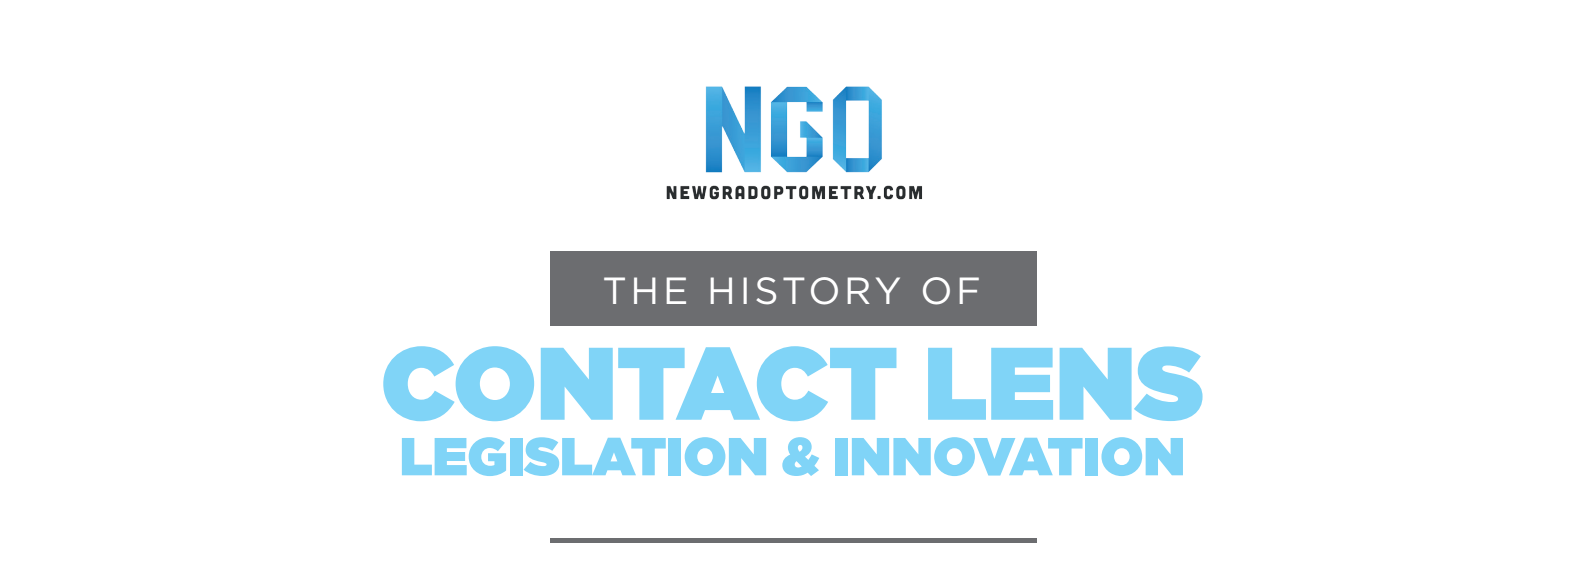 The History of Contact Lens Legislation and Innovation